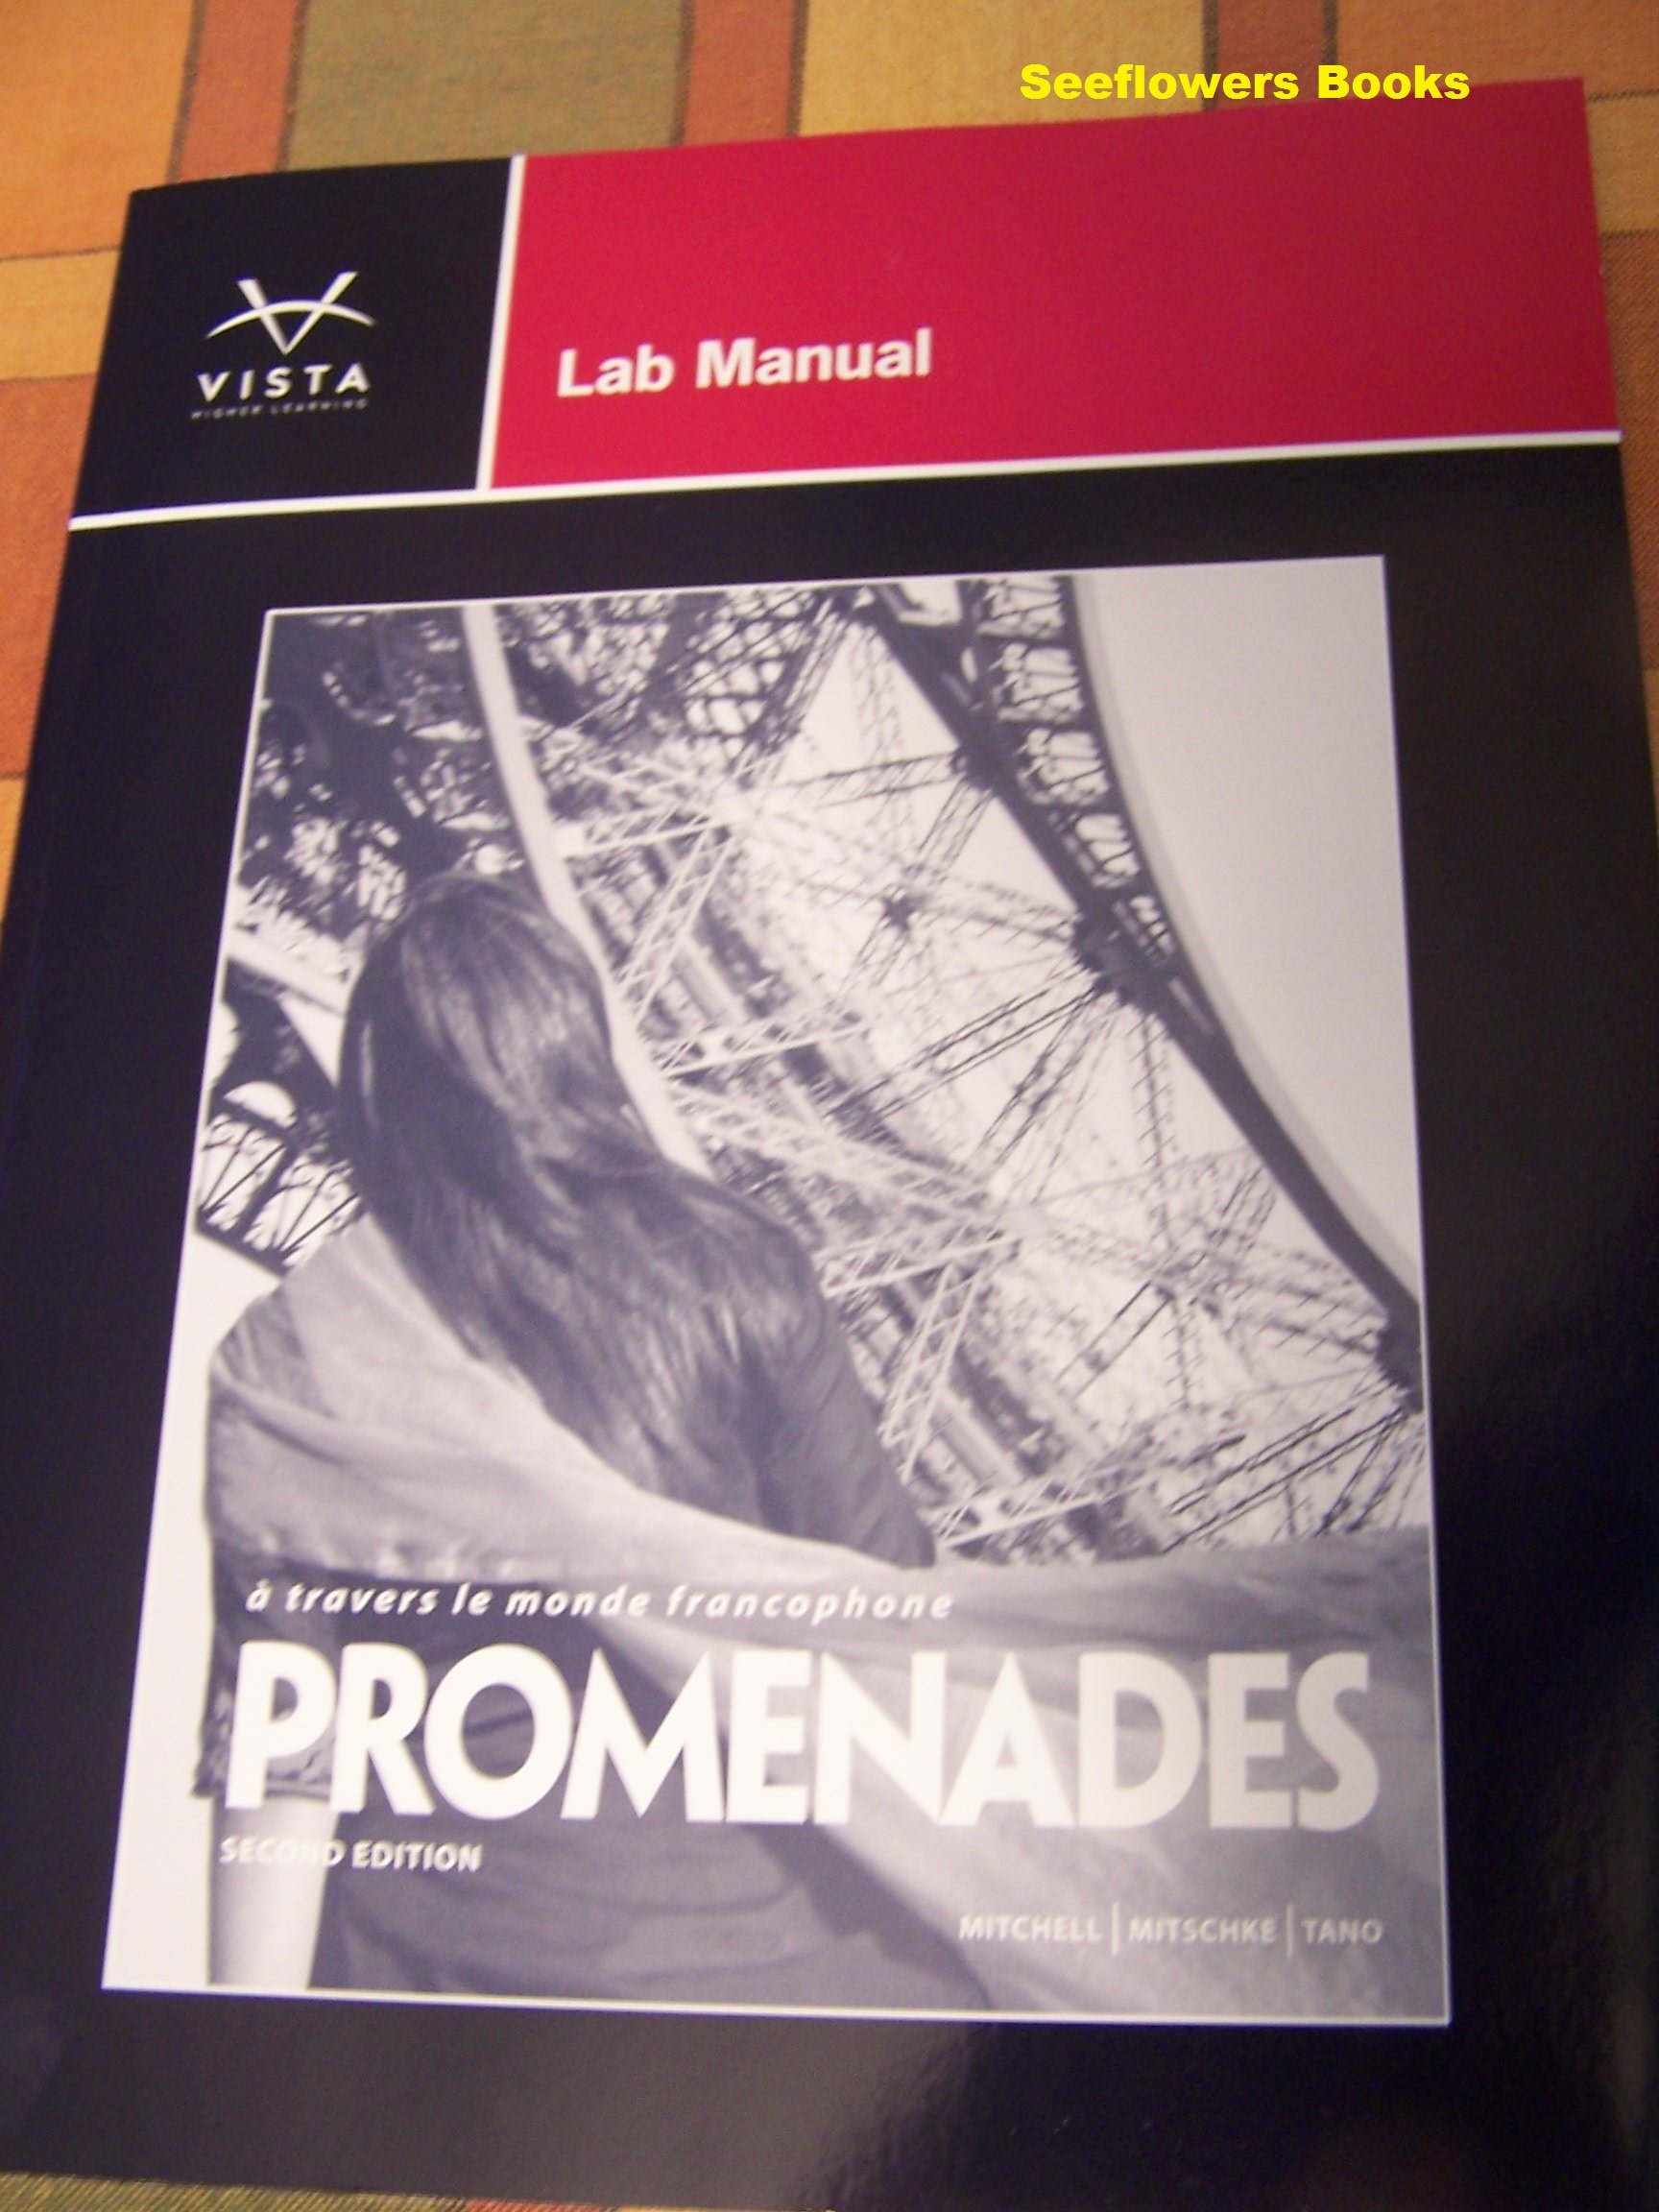 Promenades lab manual vhl 9781618570185 amazon books fandeluxe Gallery